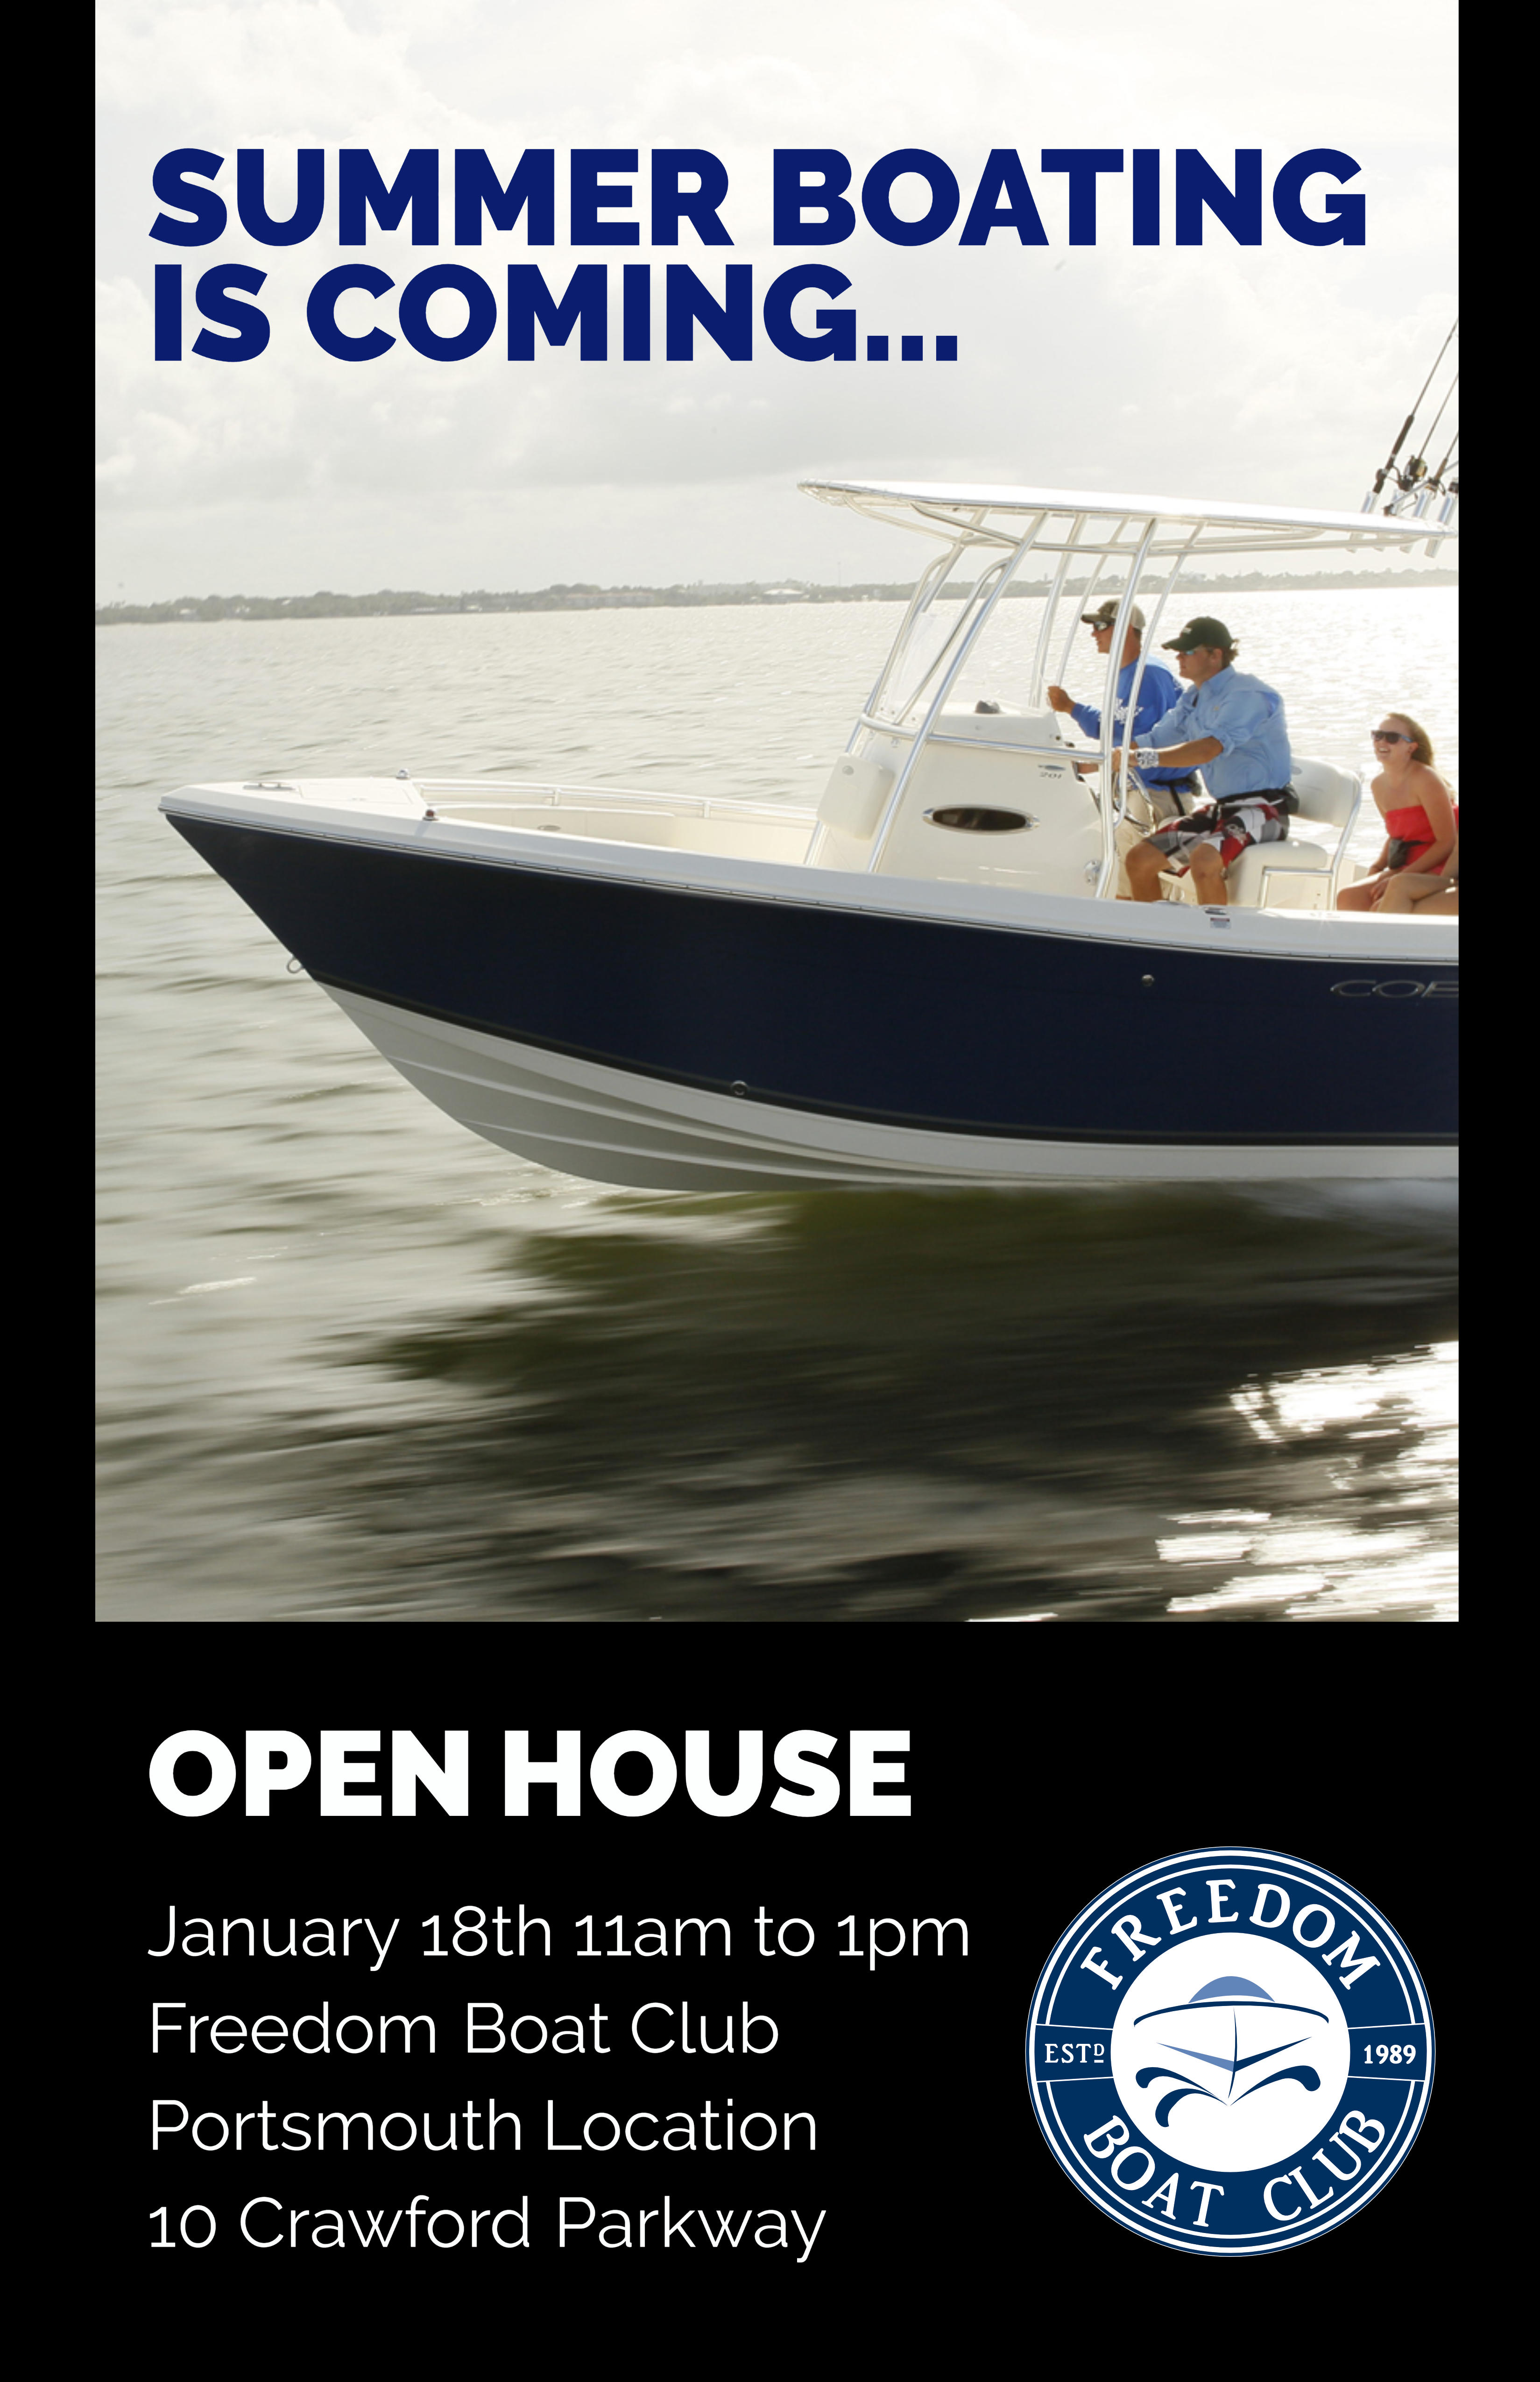 Freedom Boat Club - Open House Portsmouth